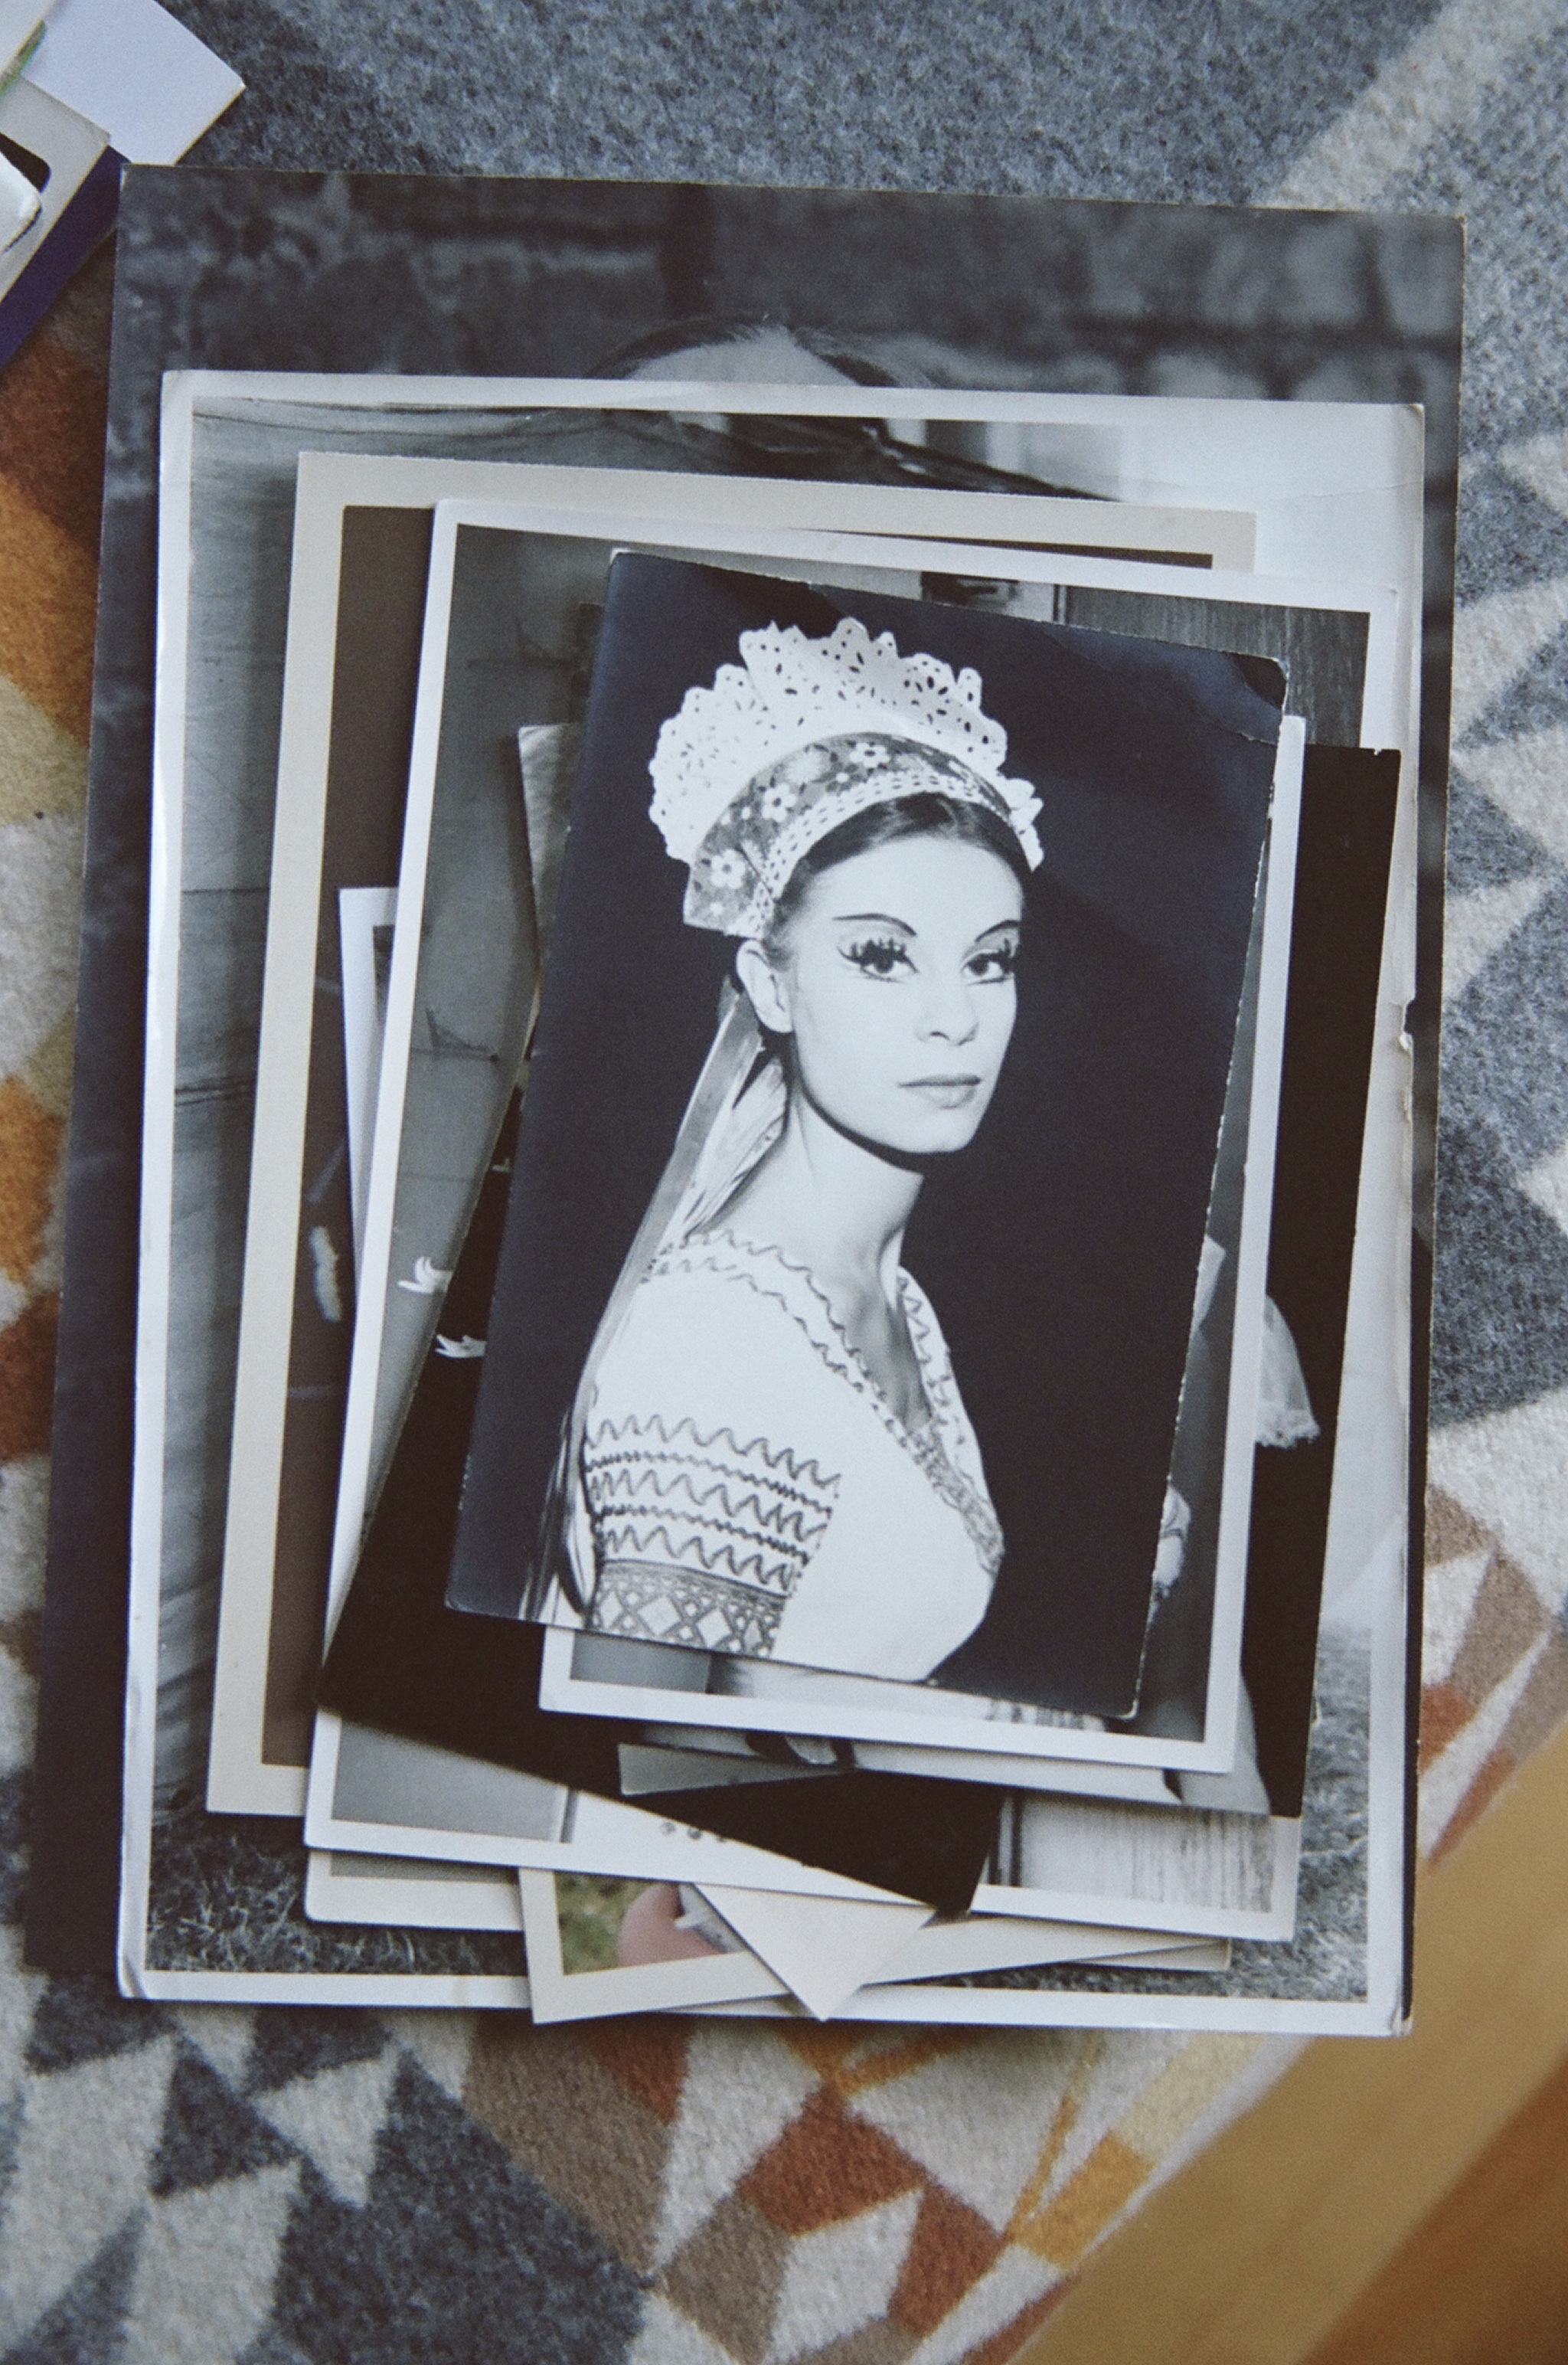 An old photo of Andreas's mother when she used to dance.